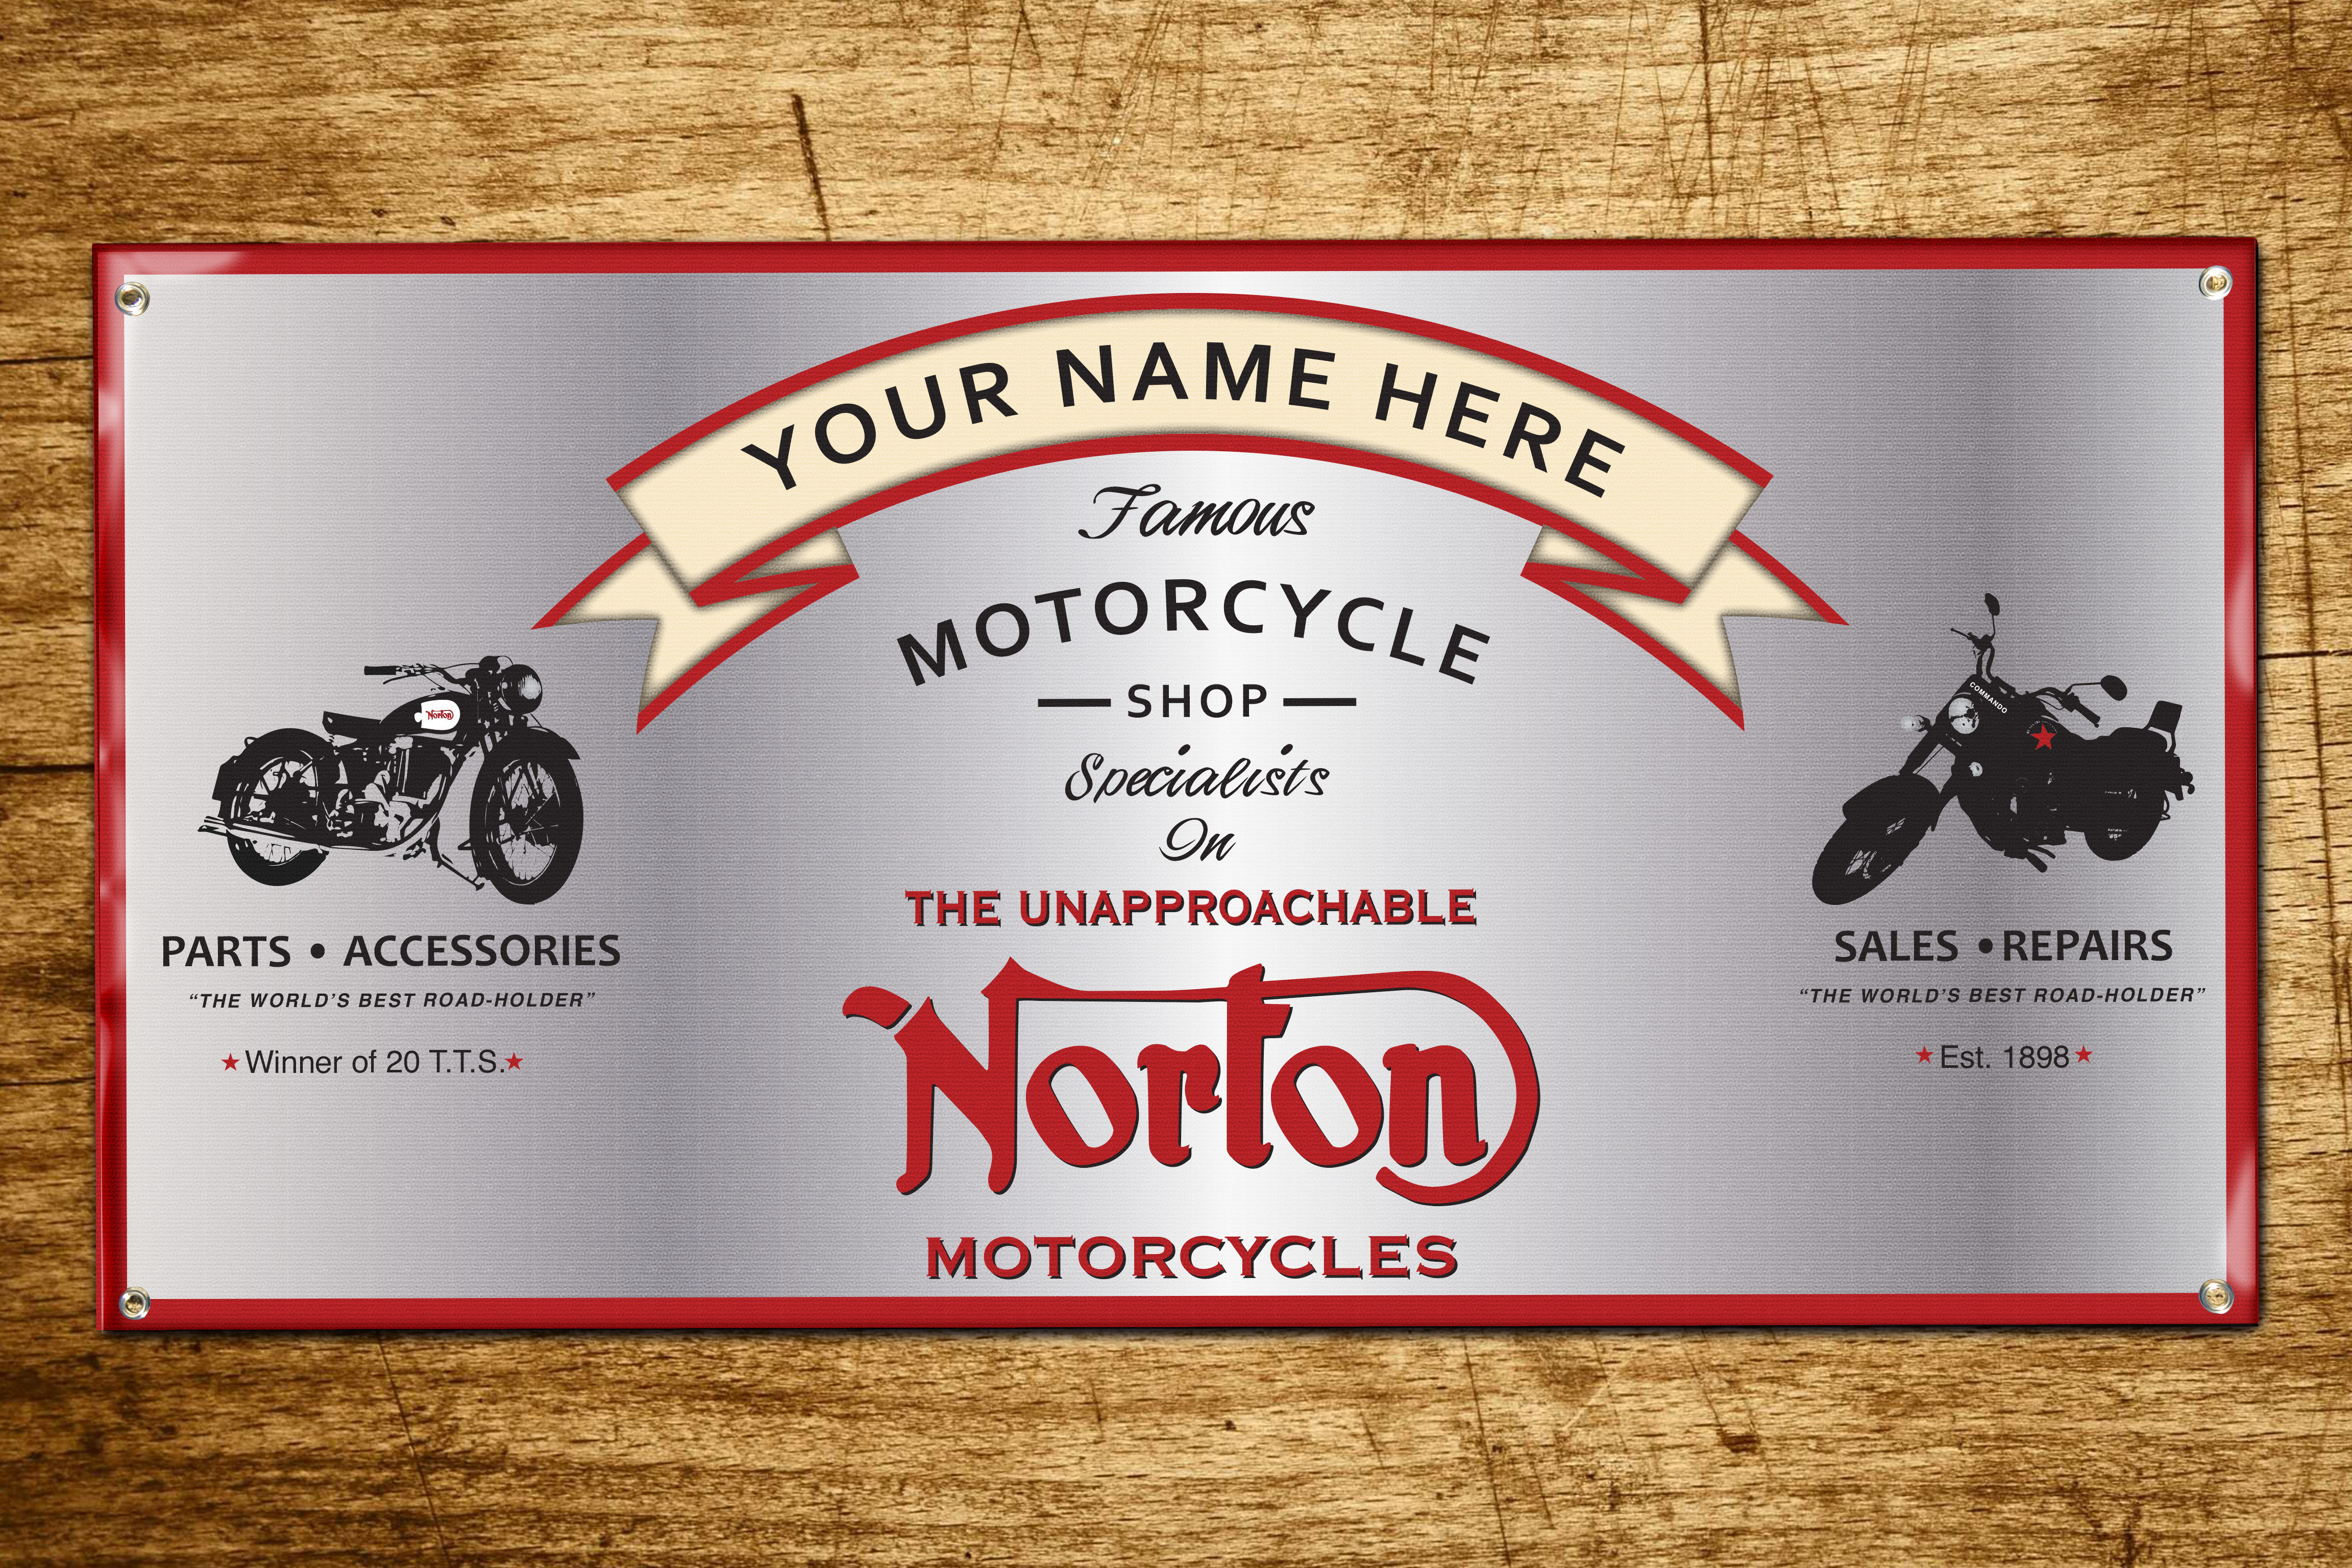 Personalized Norton Motorcycle Shop Banner 2ft x 4ft